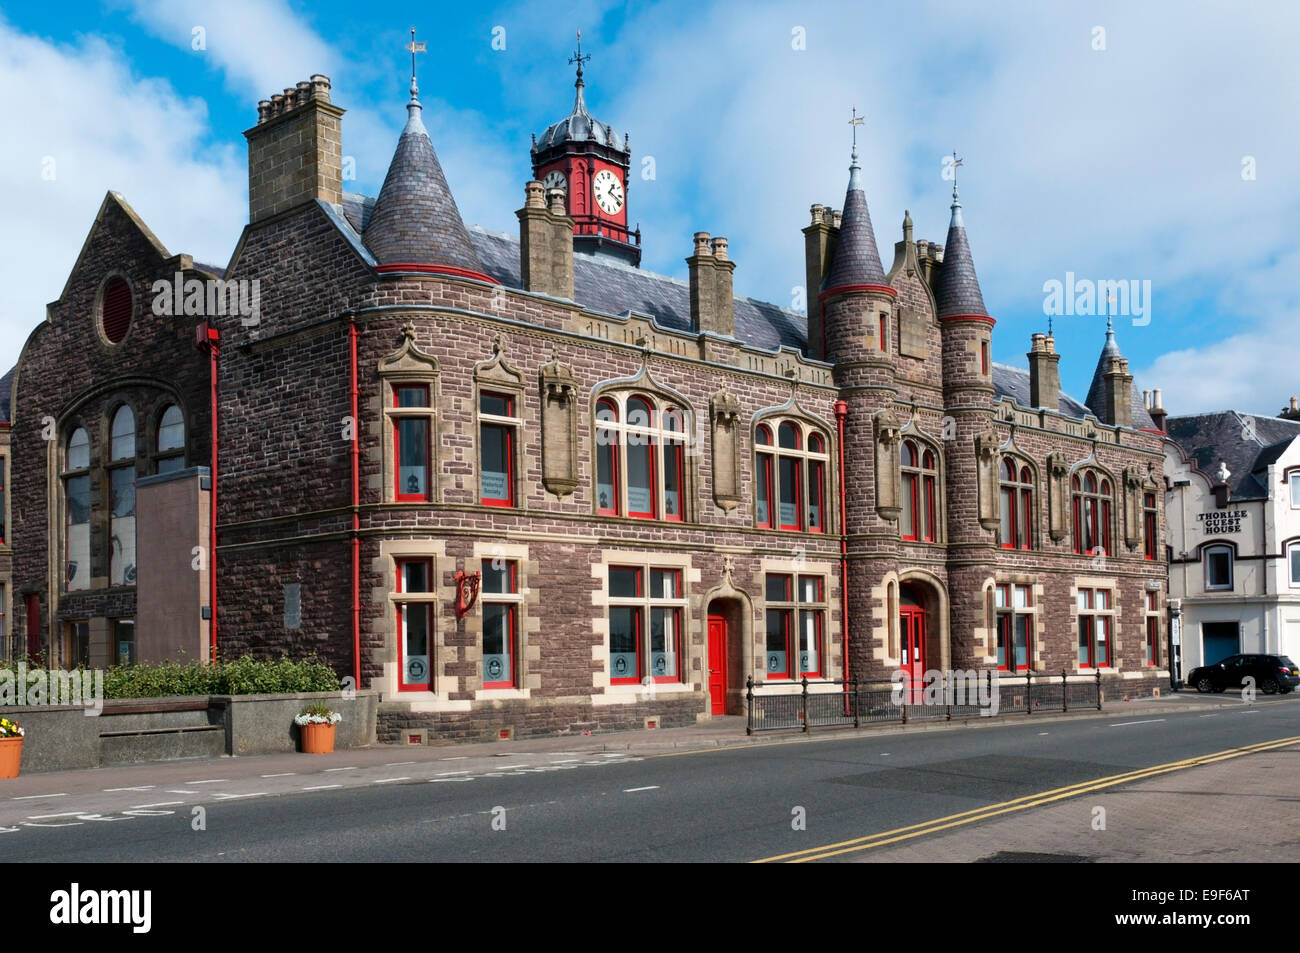 Stornoway old town hall on the Isle of Lewis, Outer Hebrides. - Stock Image